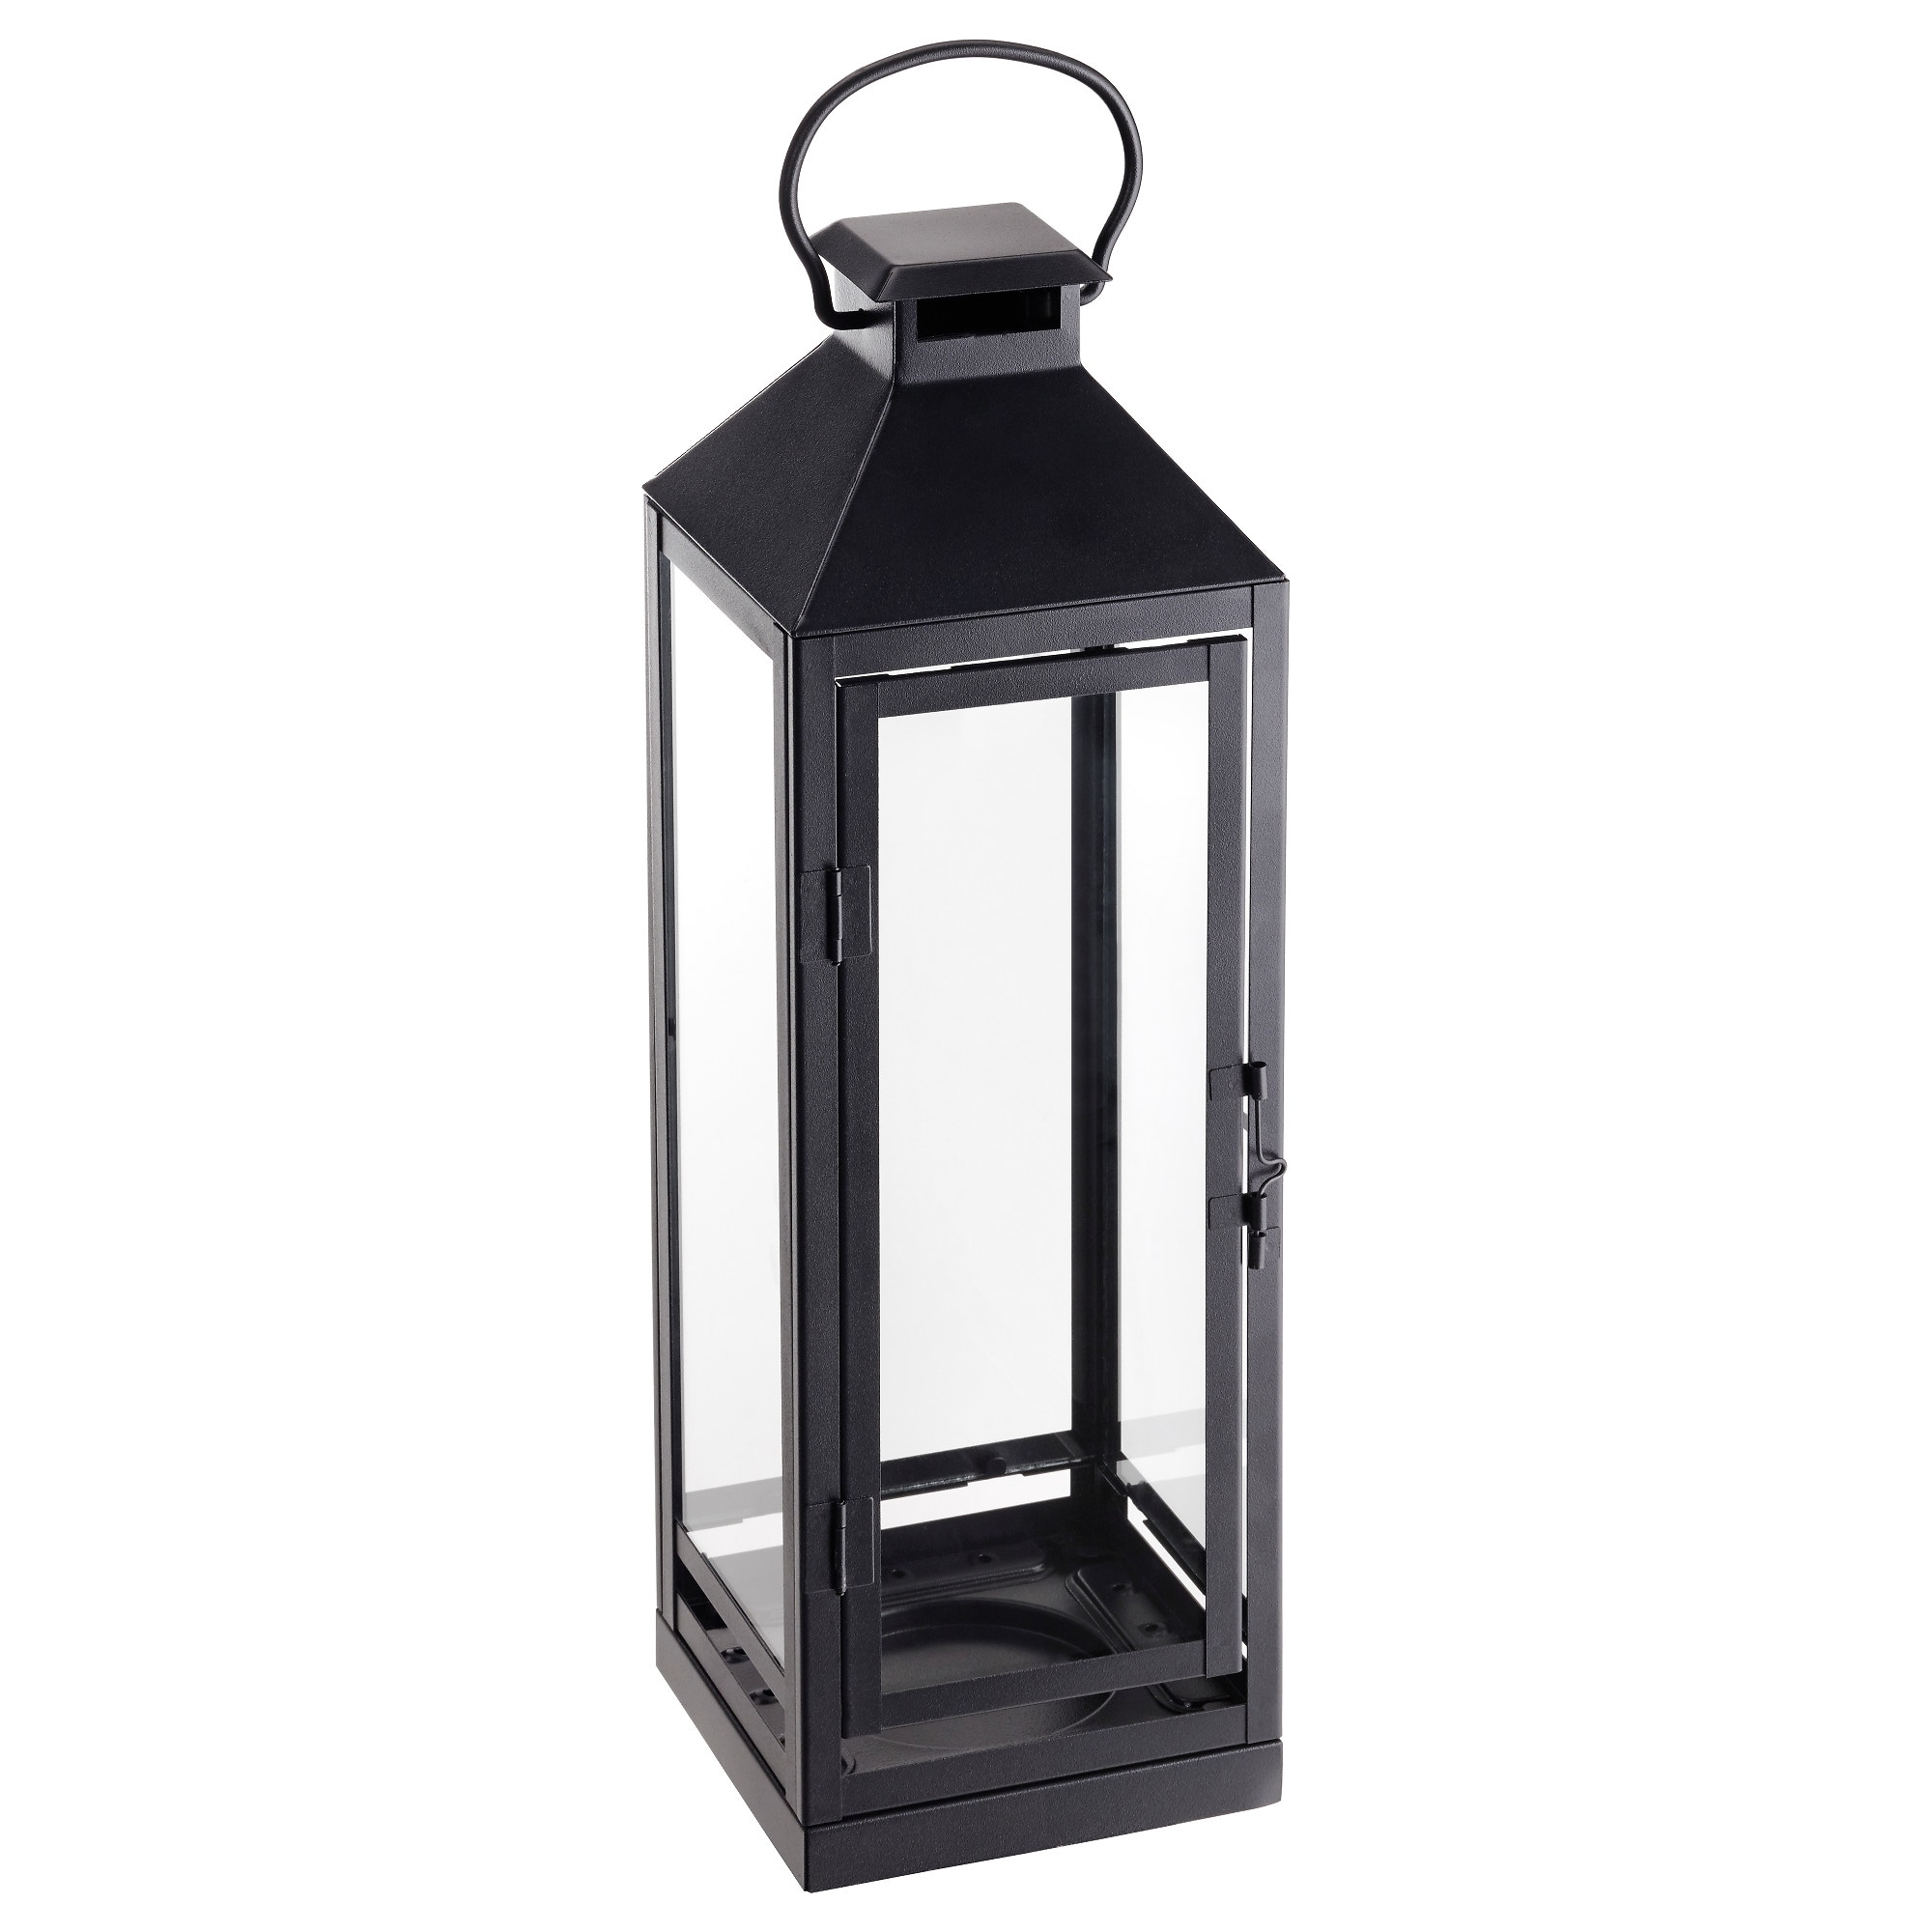 Outdoor Oversized Lanterns Intended For Most Current Lanterns & Candle Lanterns – Ikea (View 7 of 20)